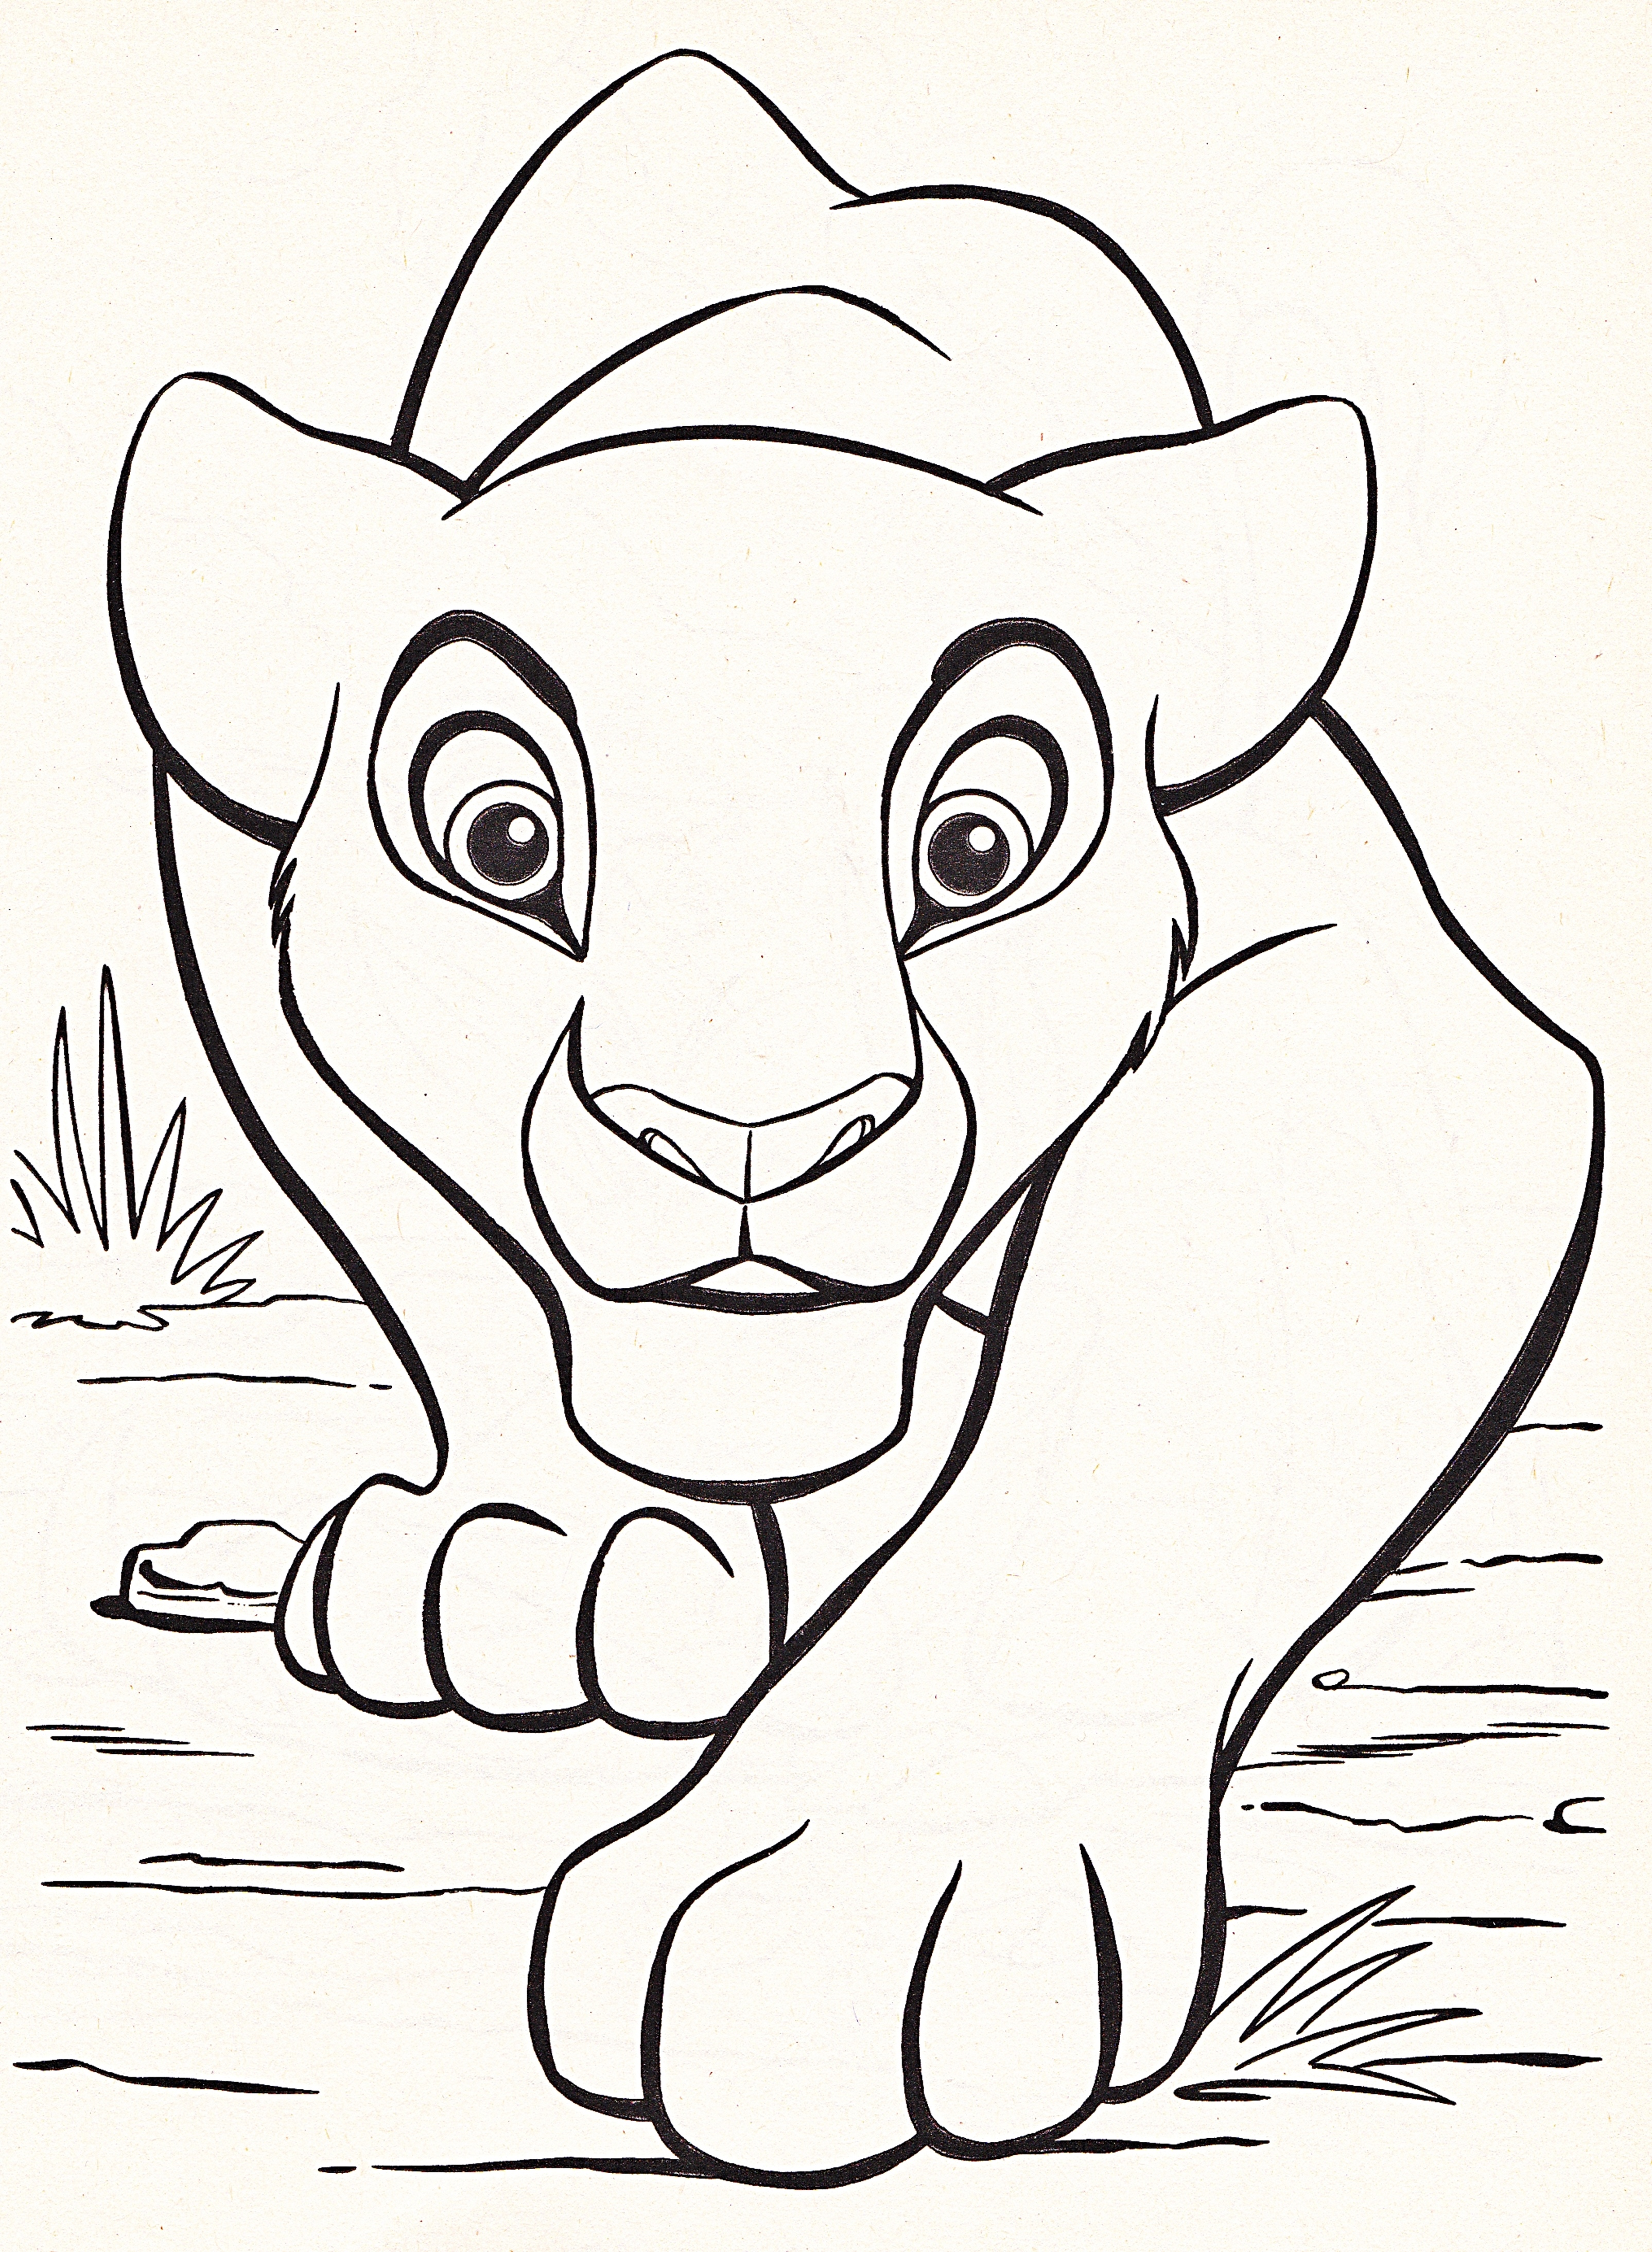 Drawing Pictures Of Disney Characters at GetDrawings.com | Free for ...